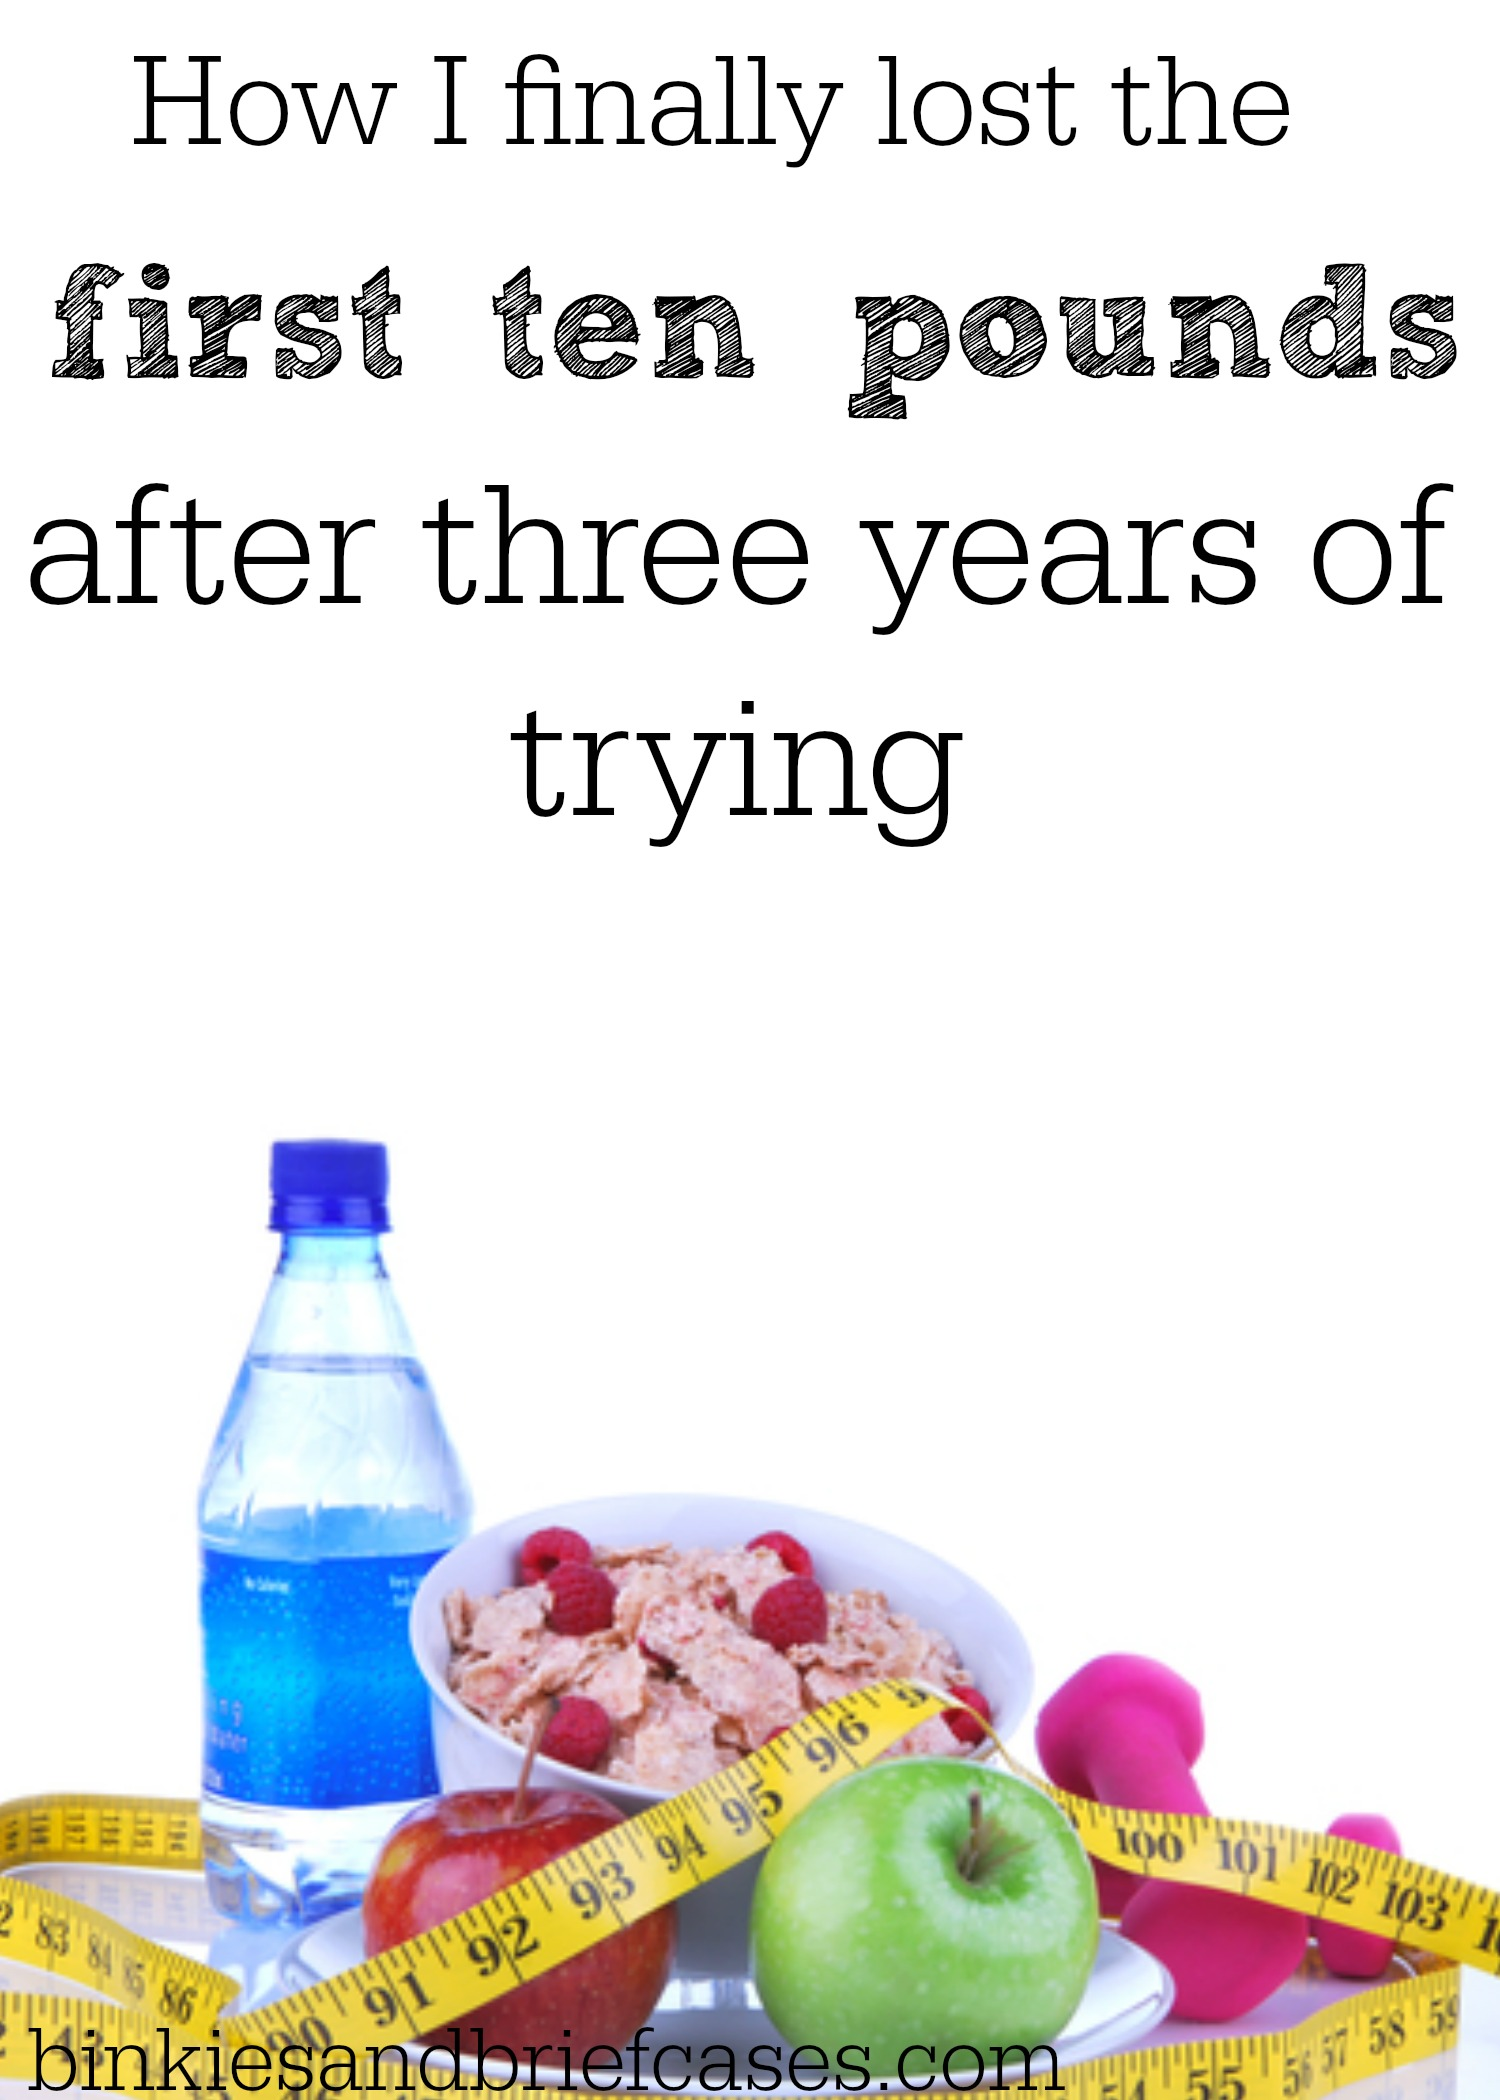 How I finally lost the first ten pounds after trying for three years to lose weight. These are really practical and healthy tips!